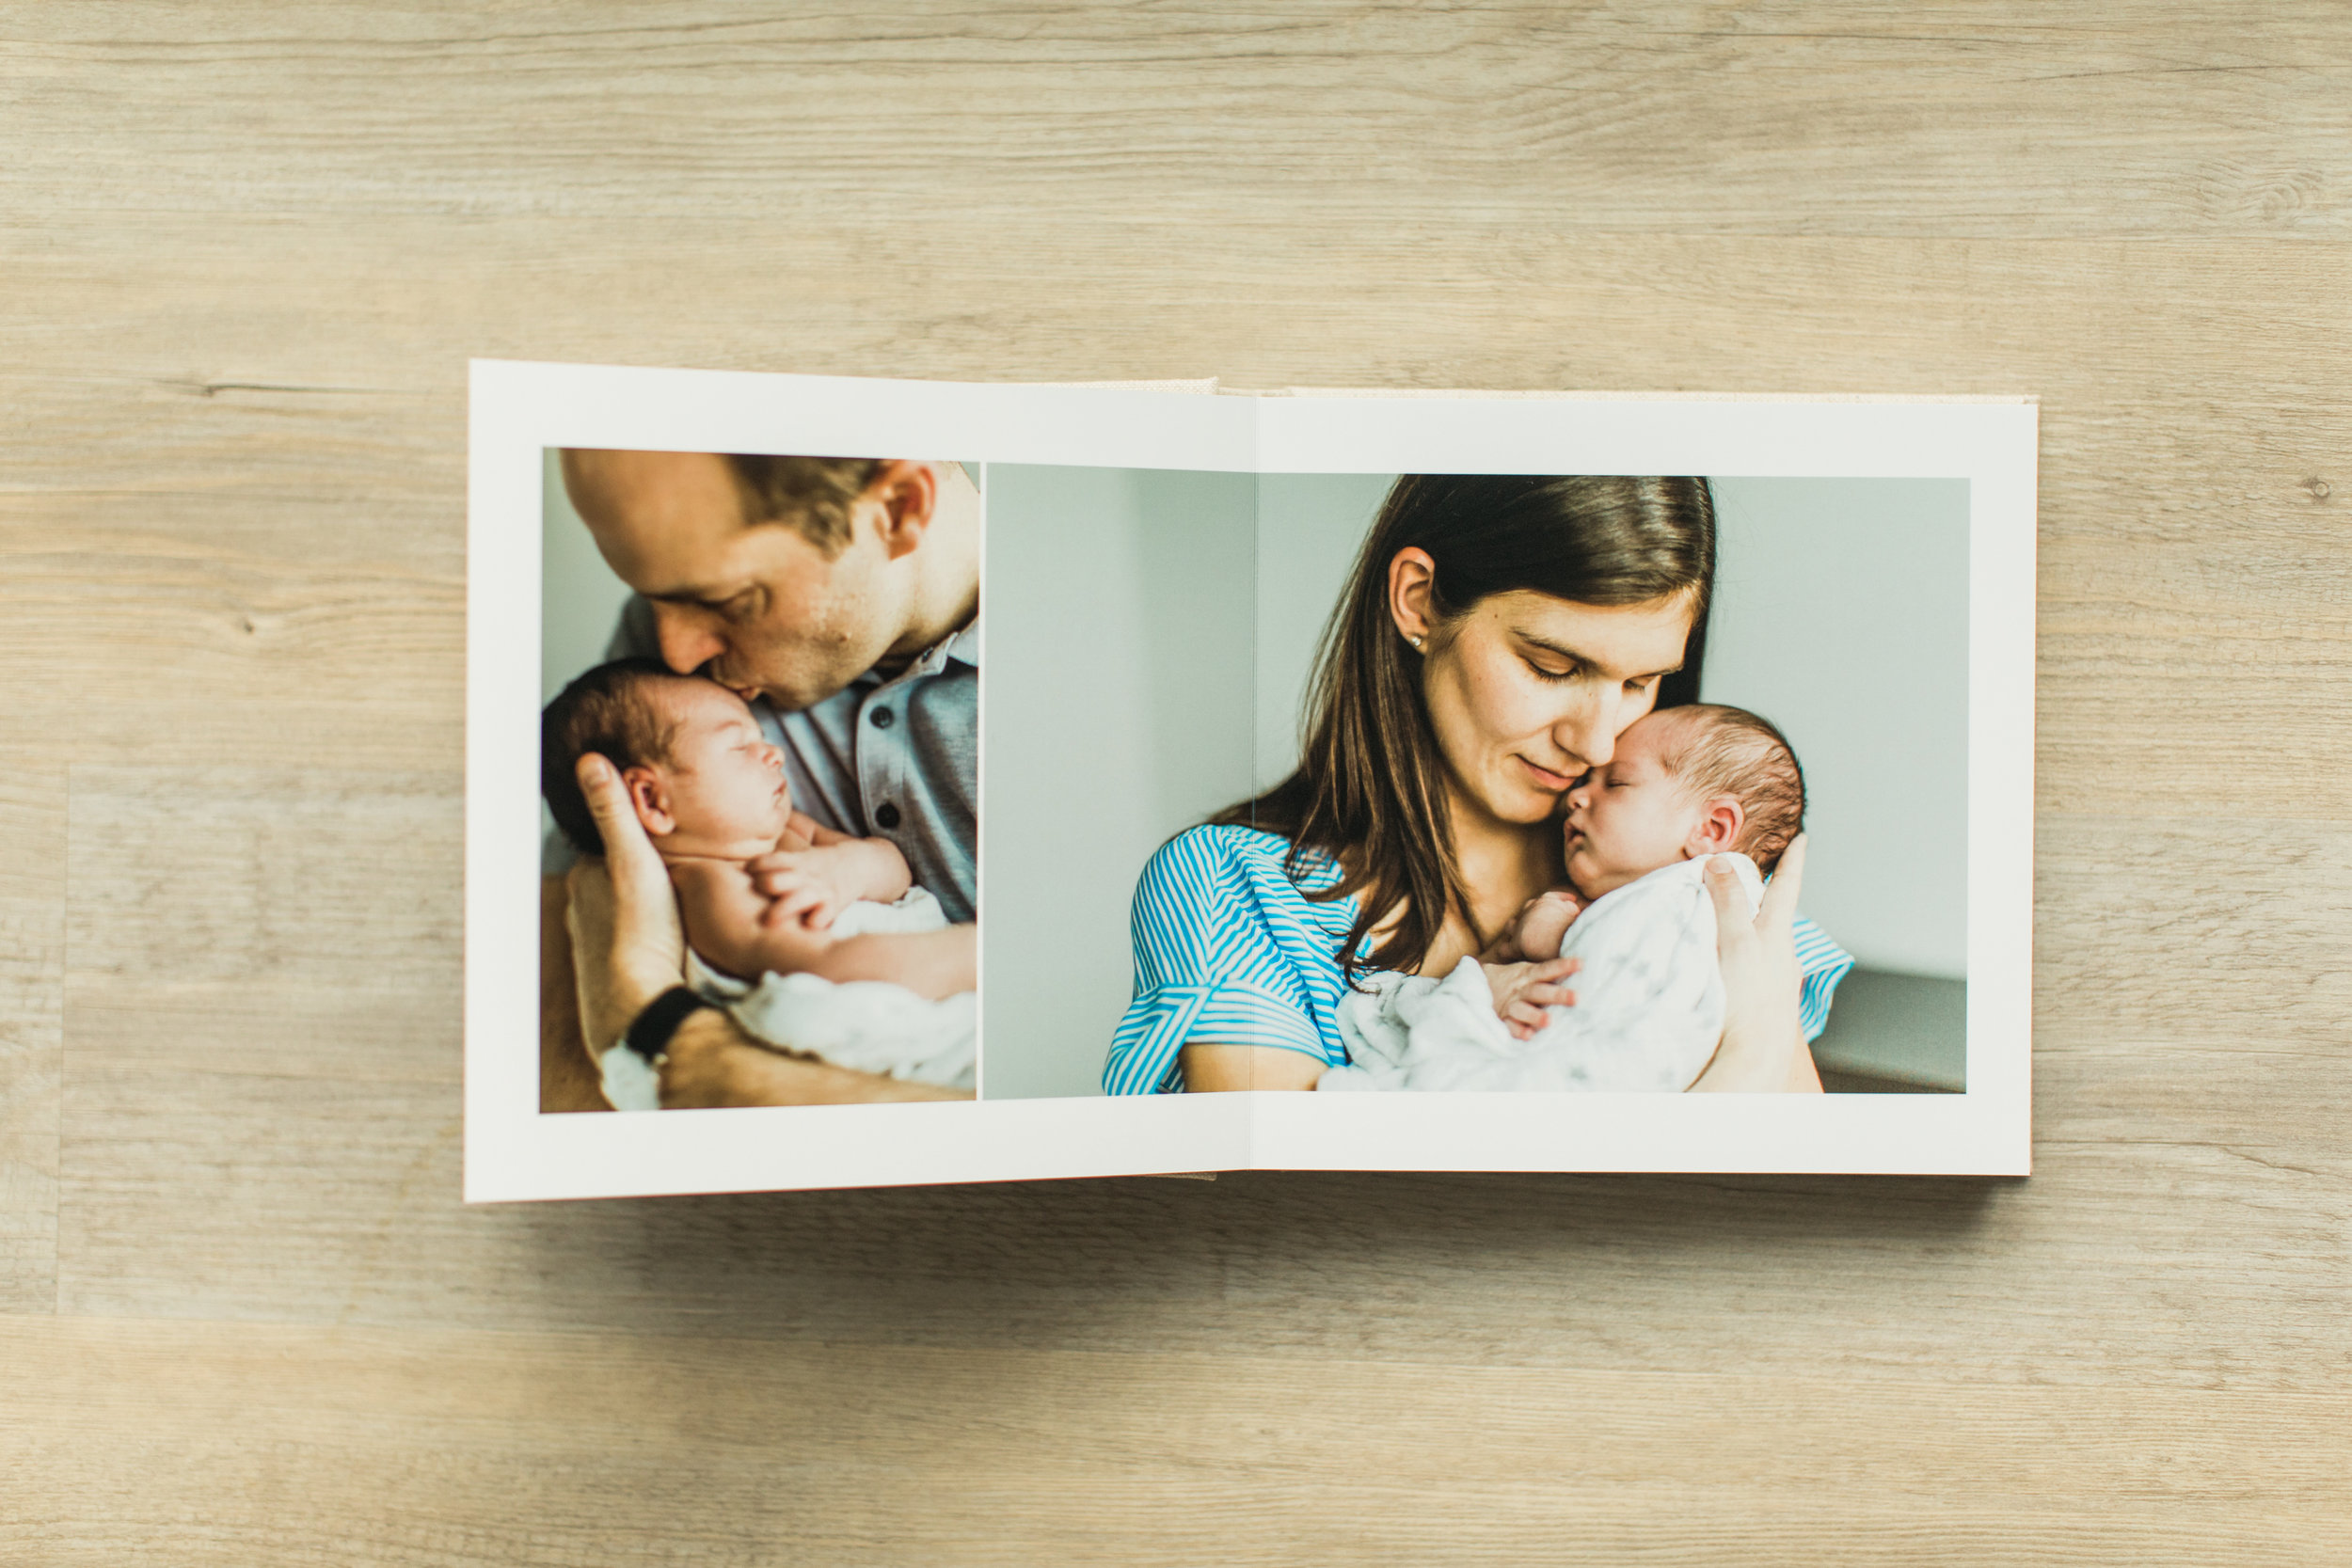 The inside pages of a baby photo album are shown.